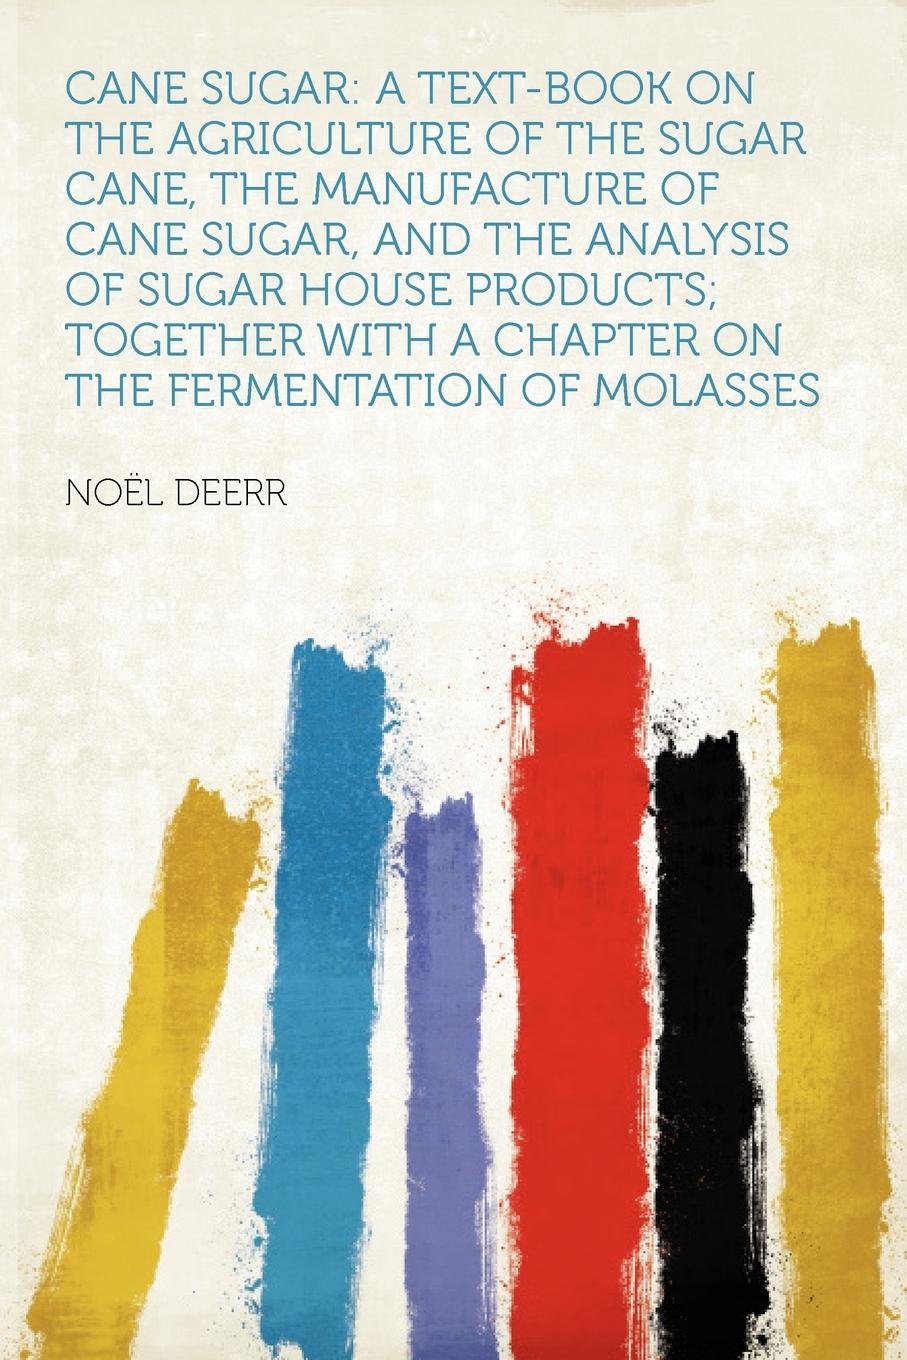 Cane Sugar: a Text-book on the Agriculture of the Sugar Cane, the Manufacture of Cane Sugar, and the Analysis of Sugar House Products; Together With a Chapter on the Fermentation of Molasses pdf